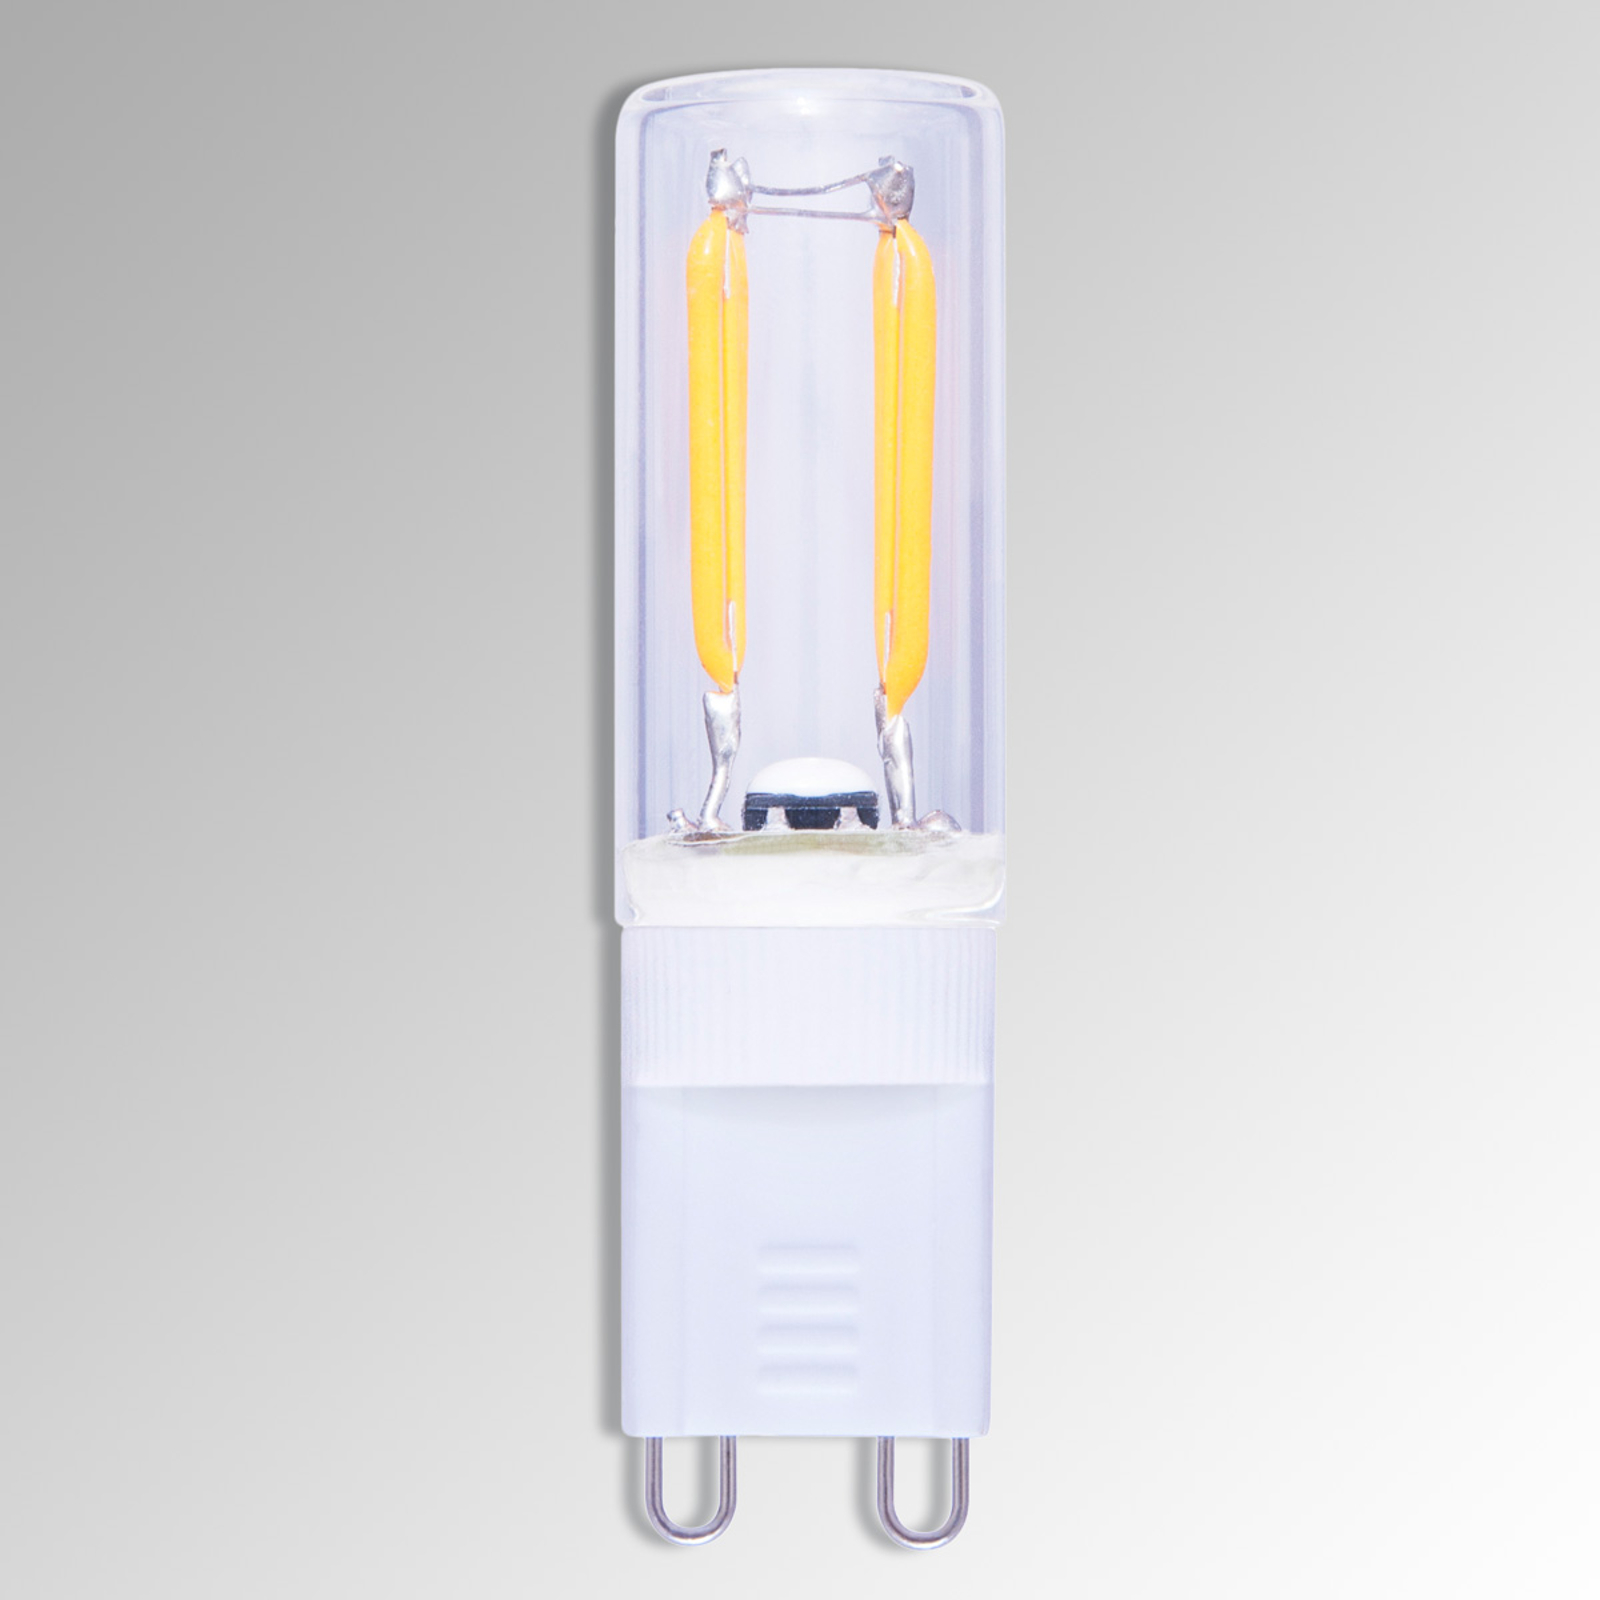 Ampoule à broches LED G9 1,5W 822 à filament